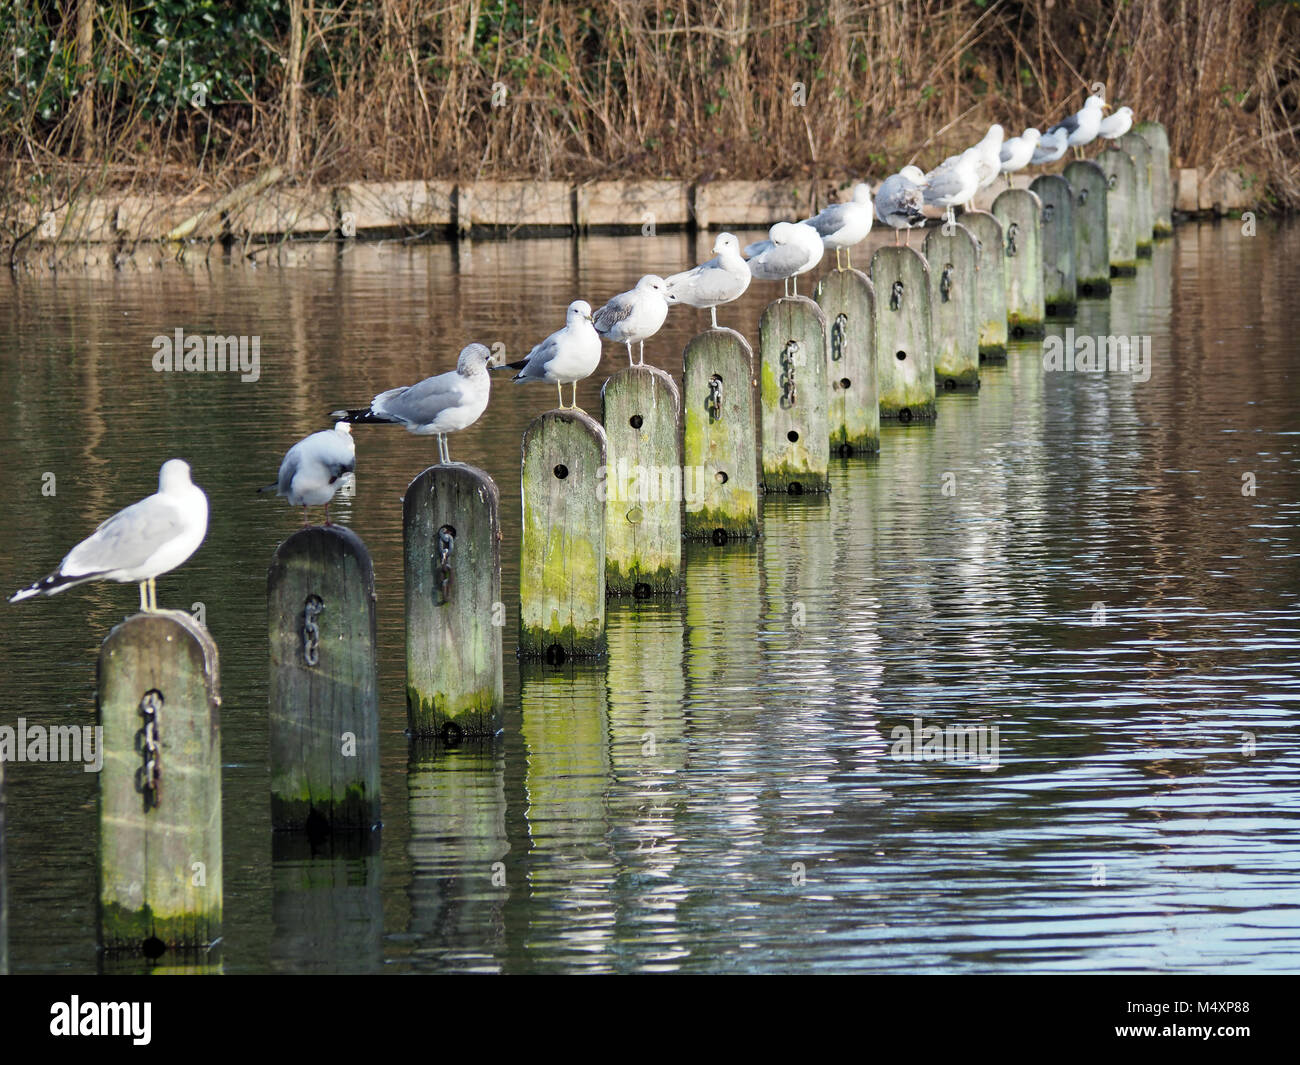 View of a row of birds in a line perched on posts in water - Stock Image